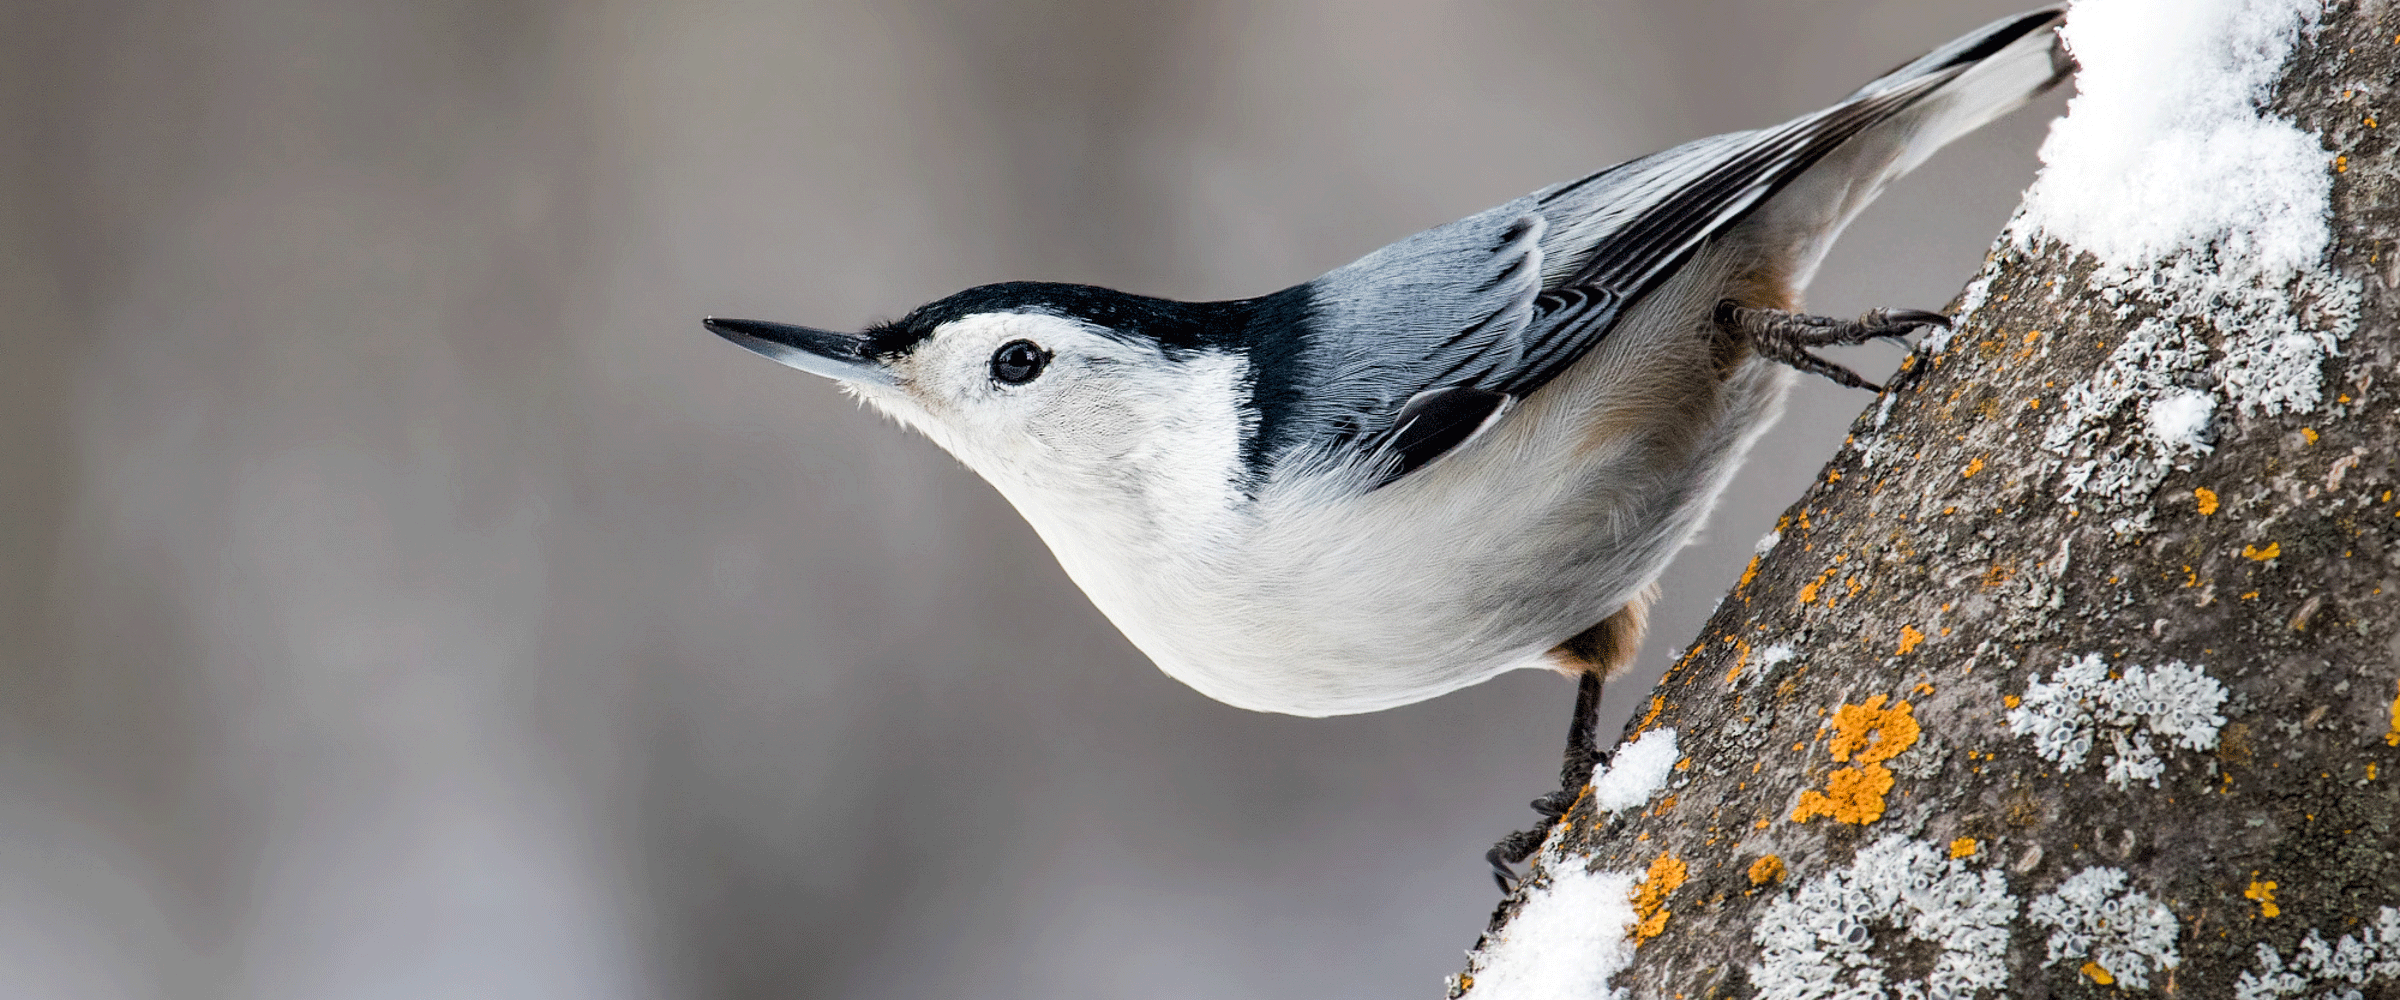 White-Breasted Nuthatch - Nick Saunders/Great Backyard Bird Count